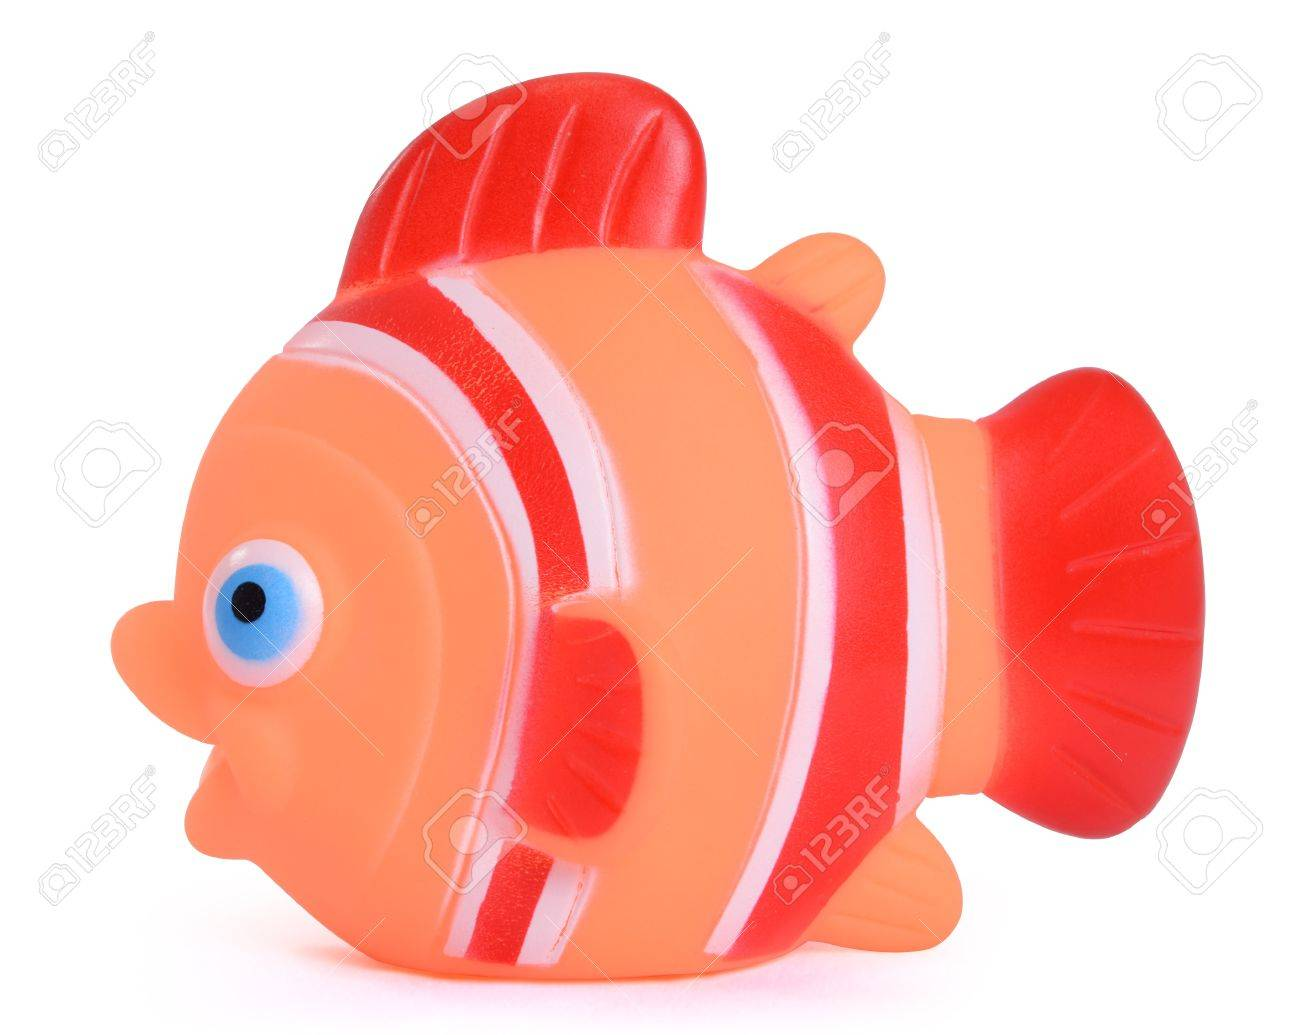 Orange Rubber Fish Toy For Bathtub Stock Photo, Picture And Royalty ...